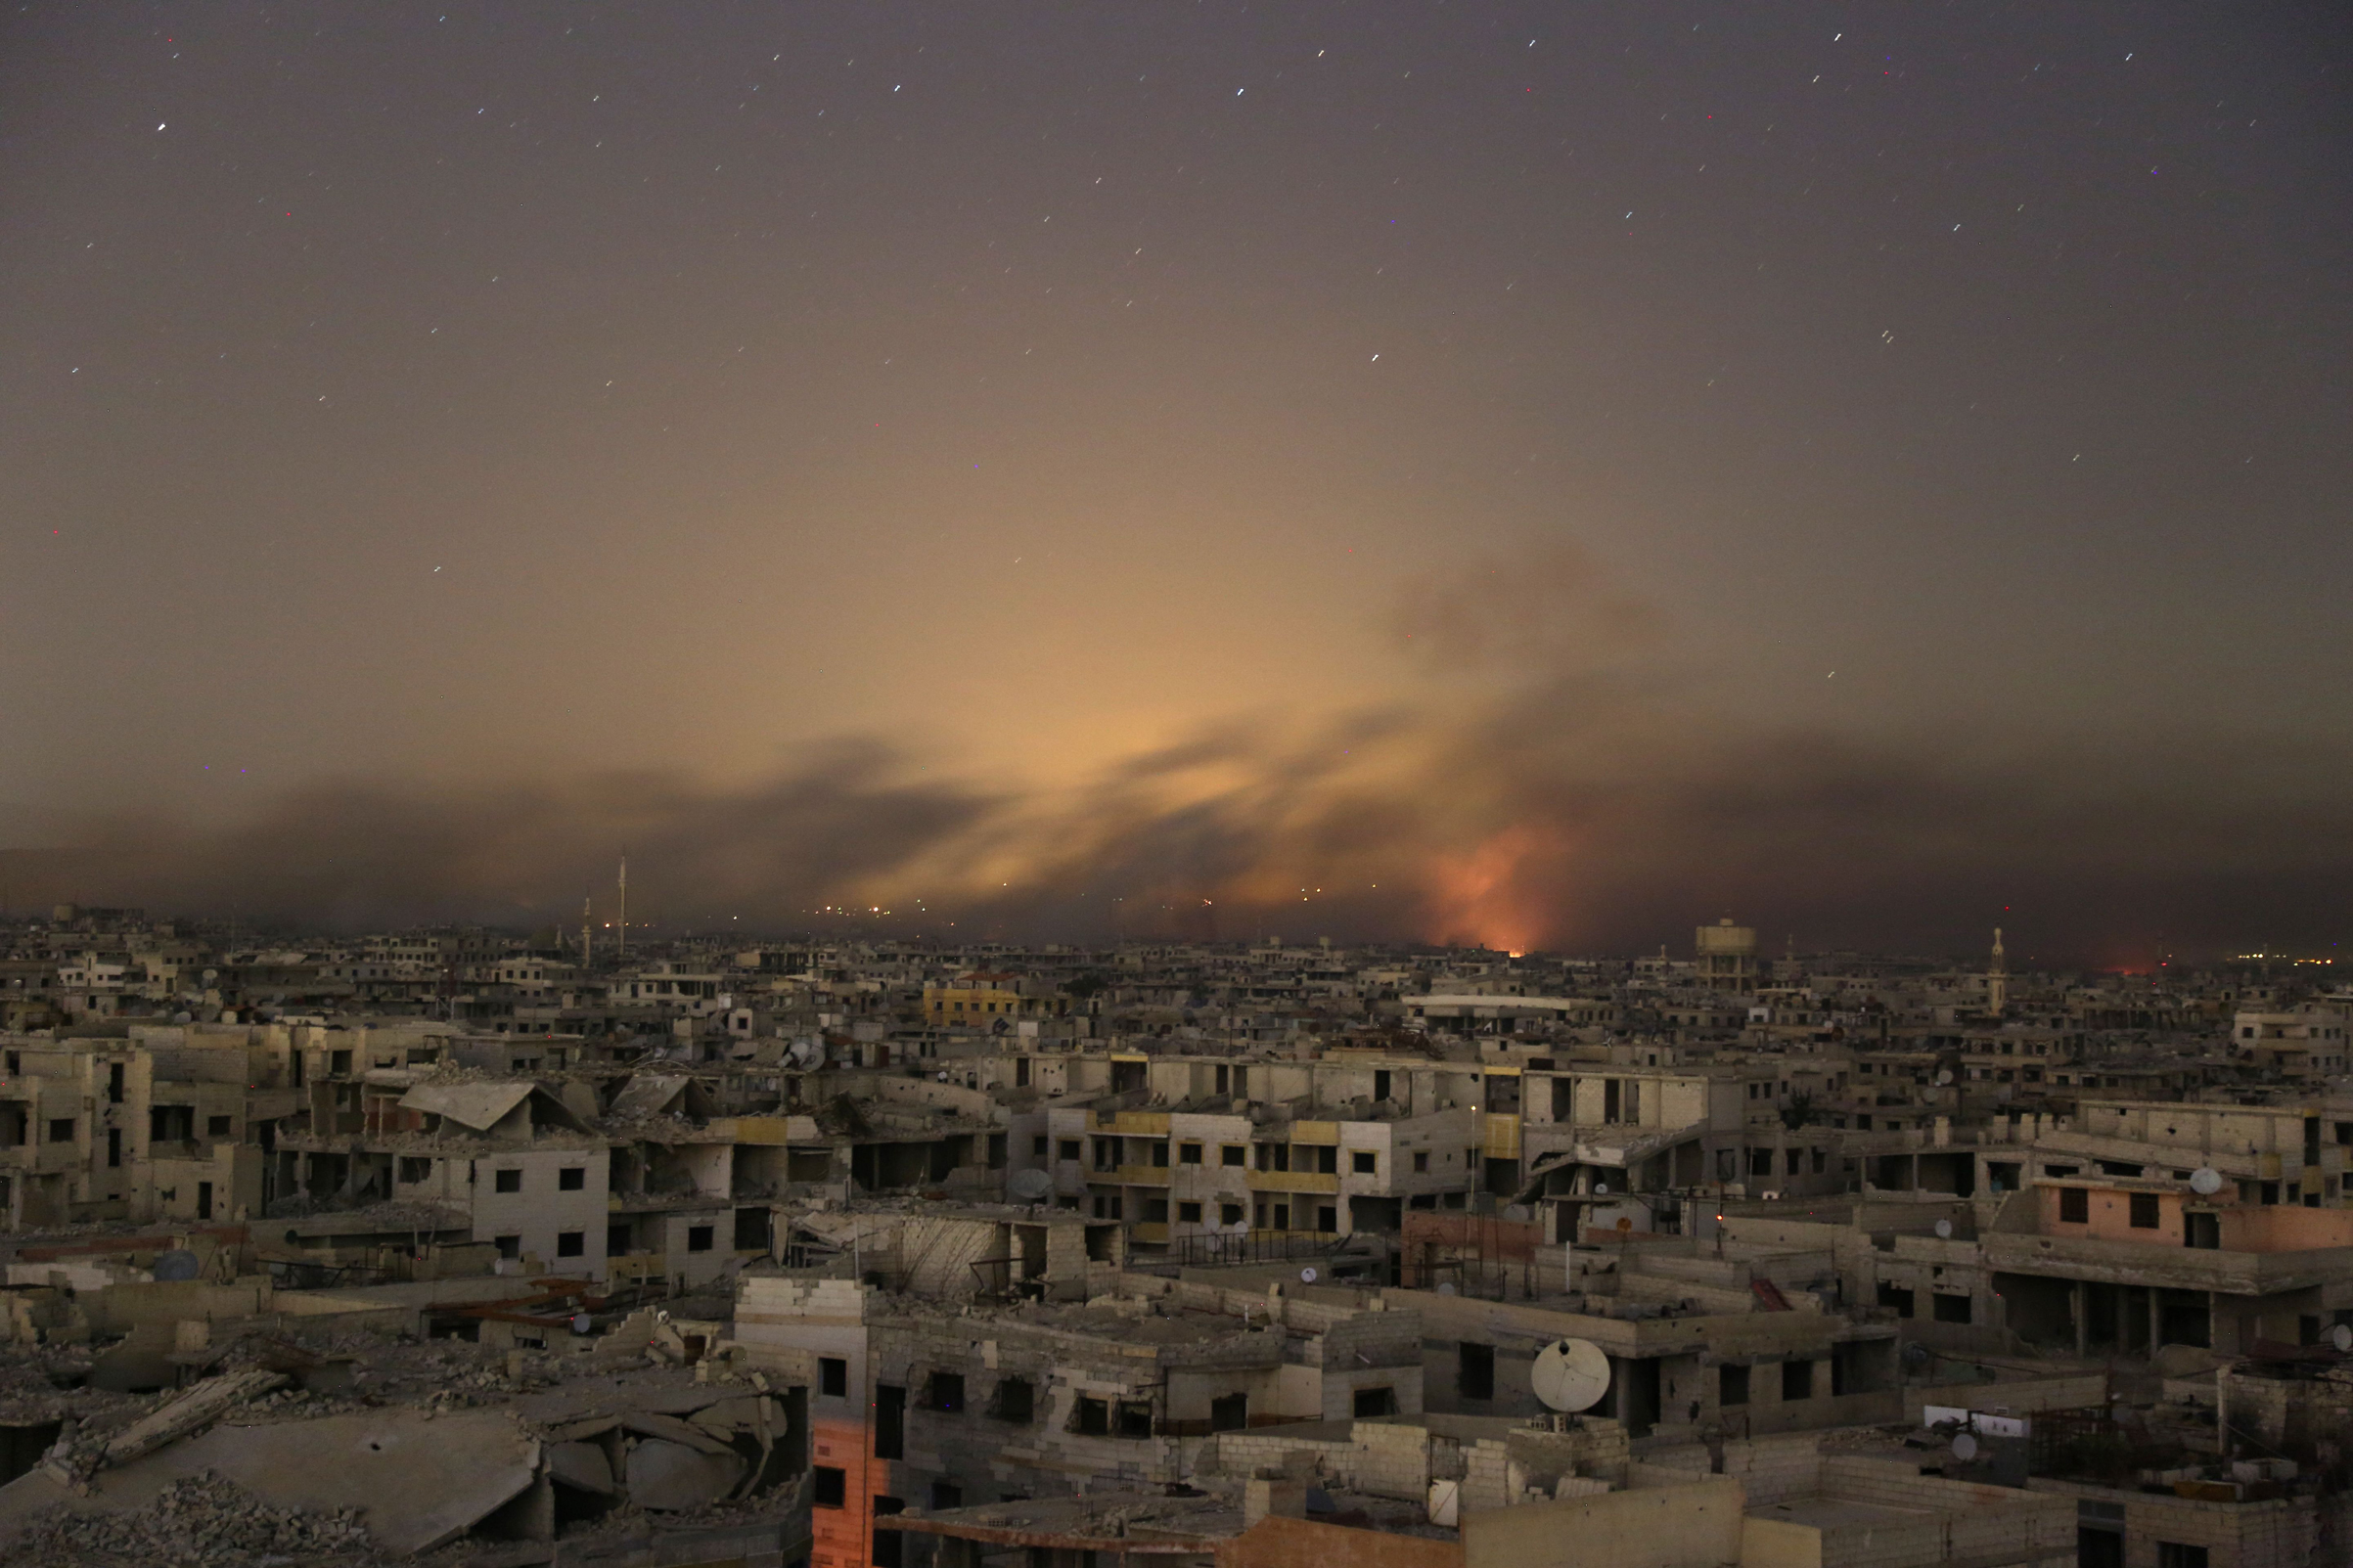 Smoke rises during Syrian government bombardment on the rebel-controlled town of Arbin, in the besieged Eastern Ghouta region on the outskirts of the capital Damascus, on late March 11, 2018.